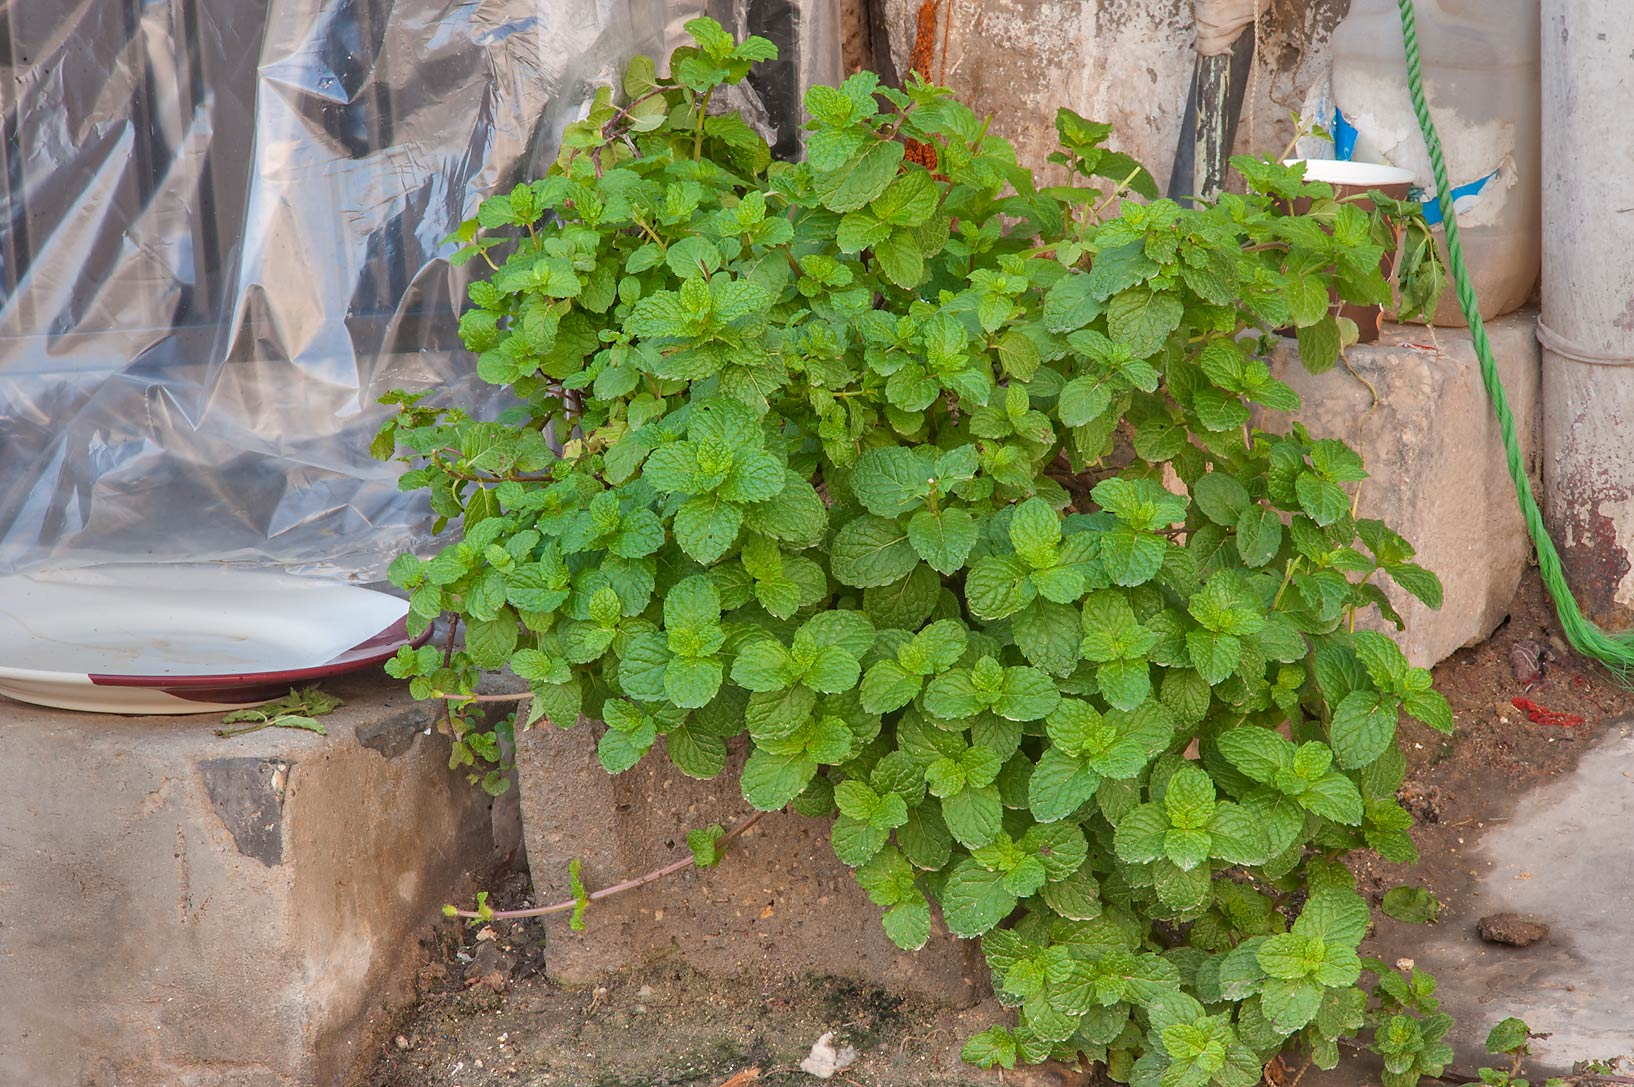 Bush of peppermint (Mentha piperita ) near Al Asmakh St. in Najada area. Doha, Qatar